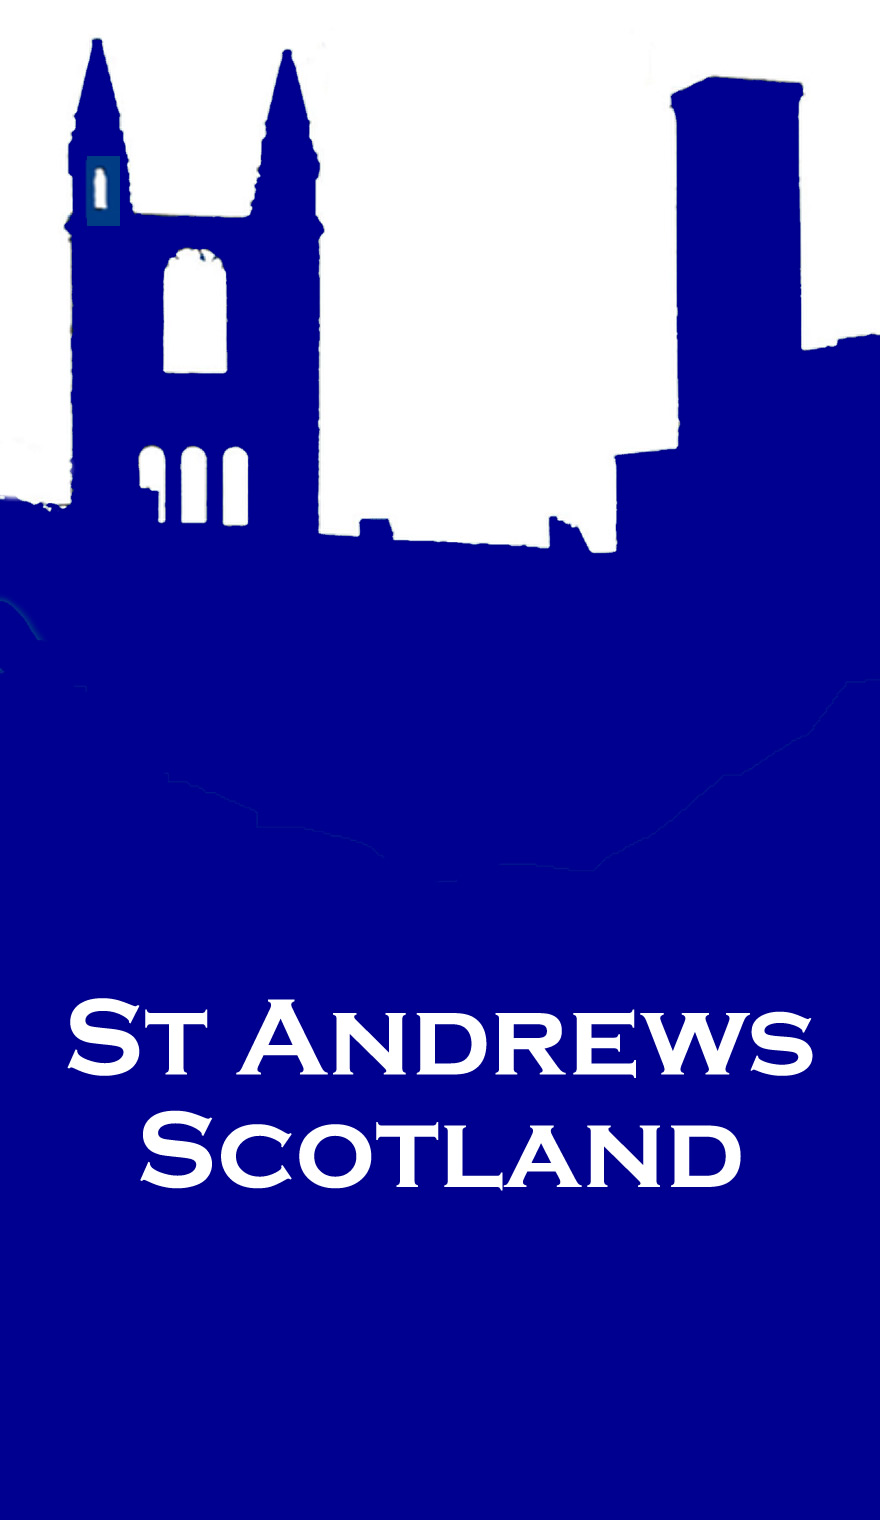 Links to all things to do with St Andrews, Scotland